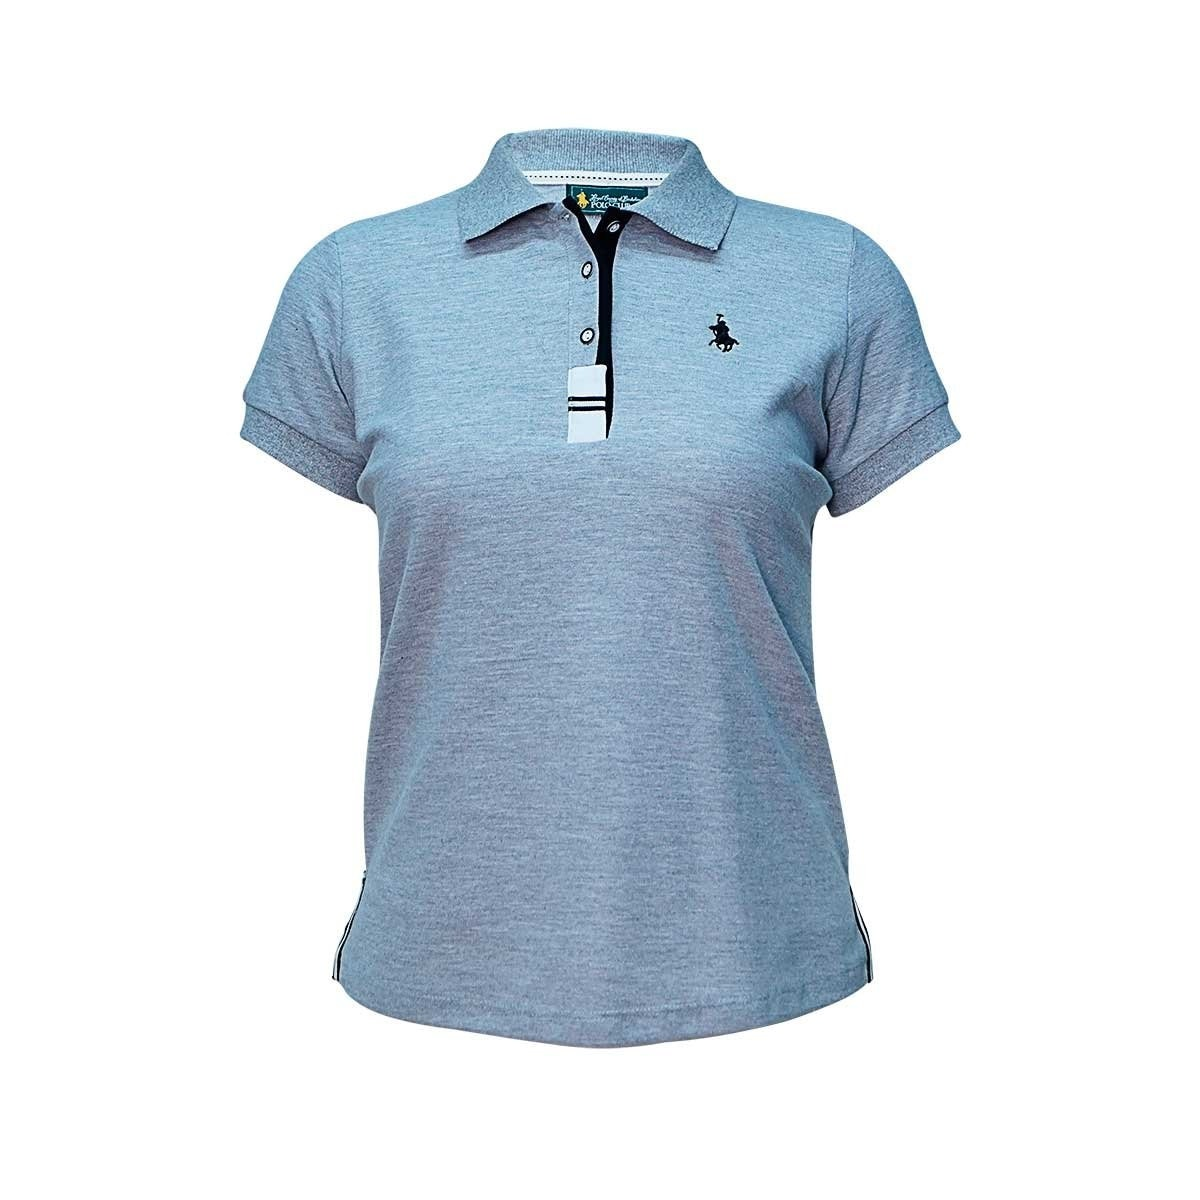 b9d06431fd072 Playera Polo Lisa Polo Club -   824.00 en Mercado Libre